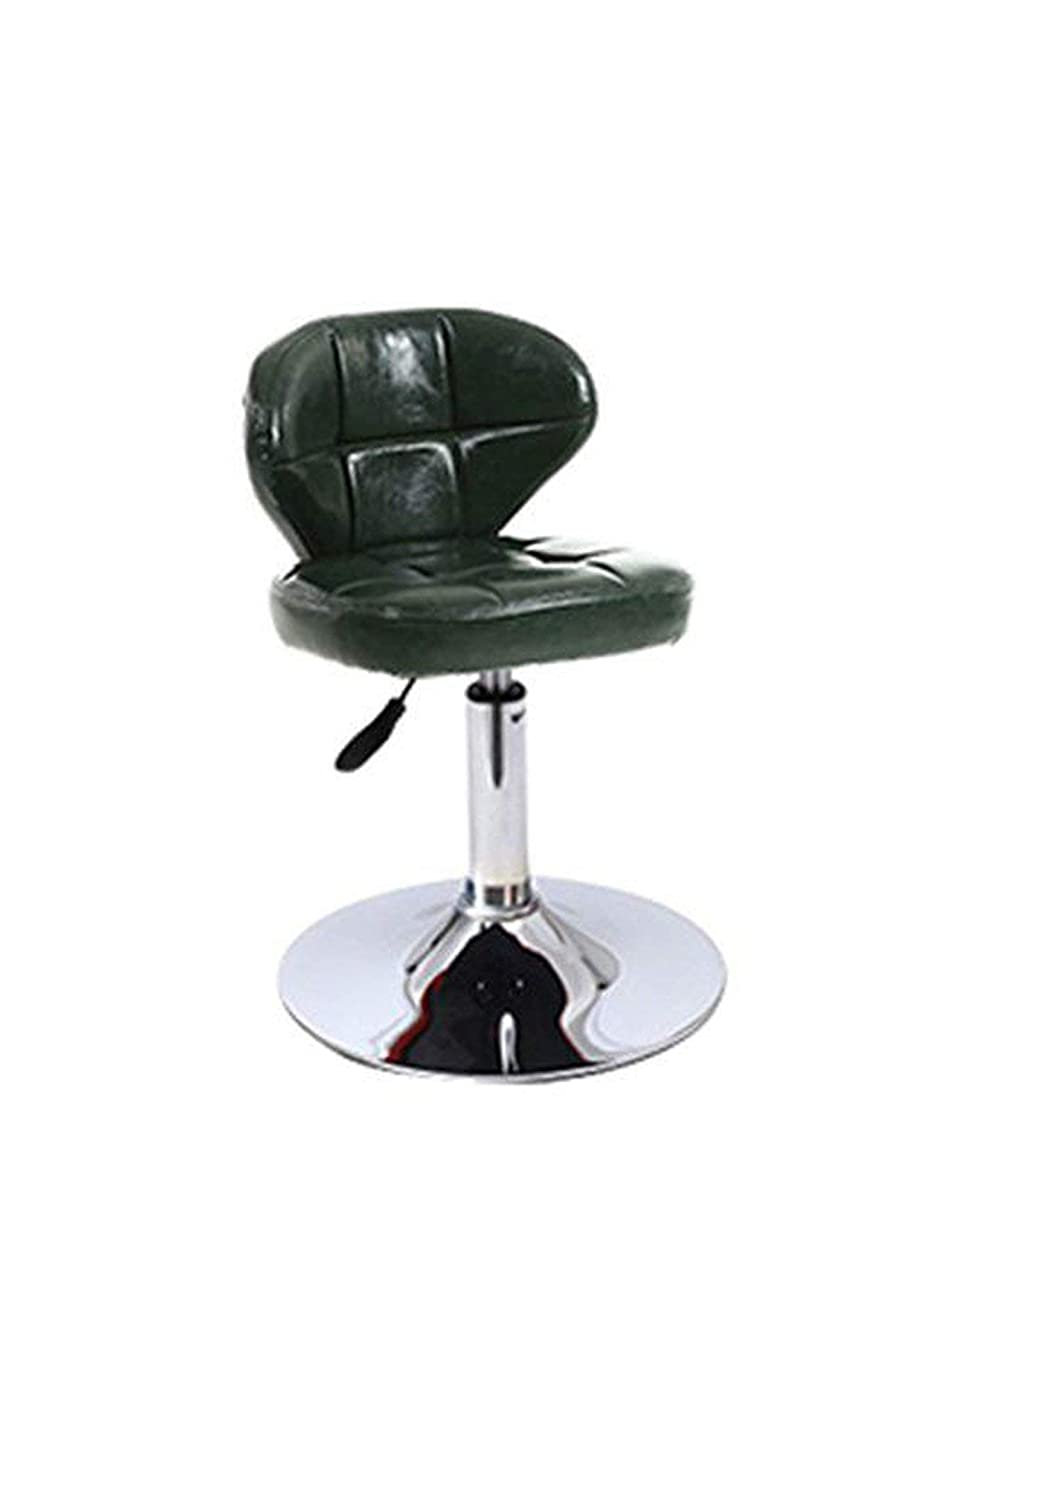 Style 14 tthappy76 European Bar Stools Bar Chair High Table and Chair Bar Stool Lifting redating Home Back Computer Chair,Style 11